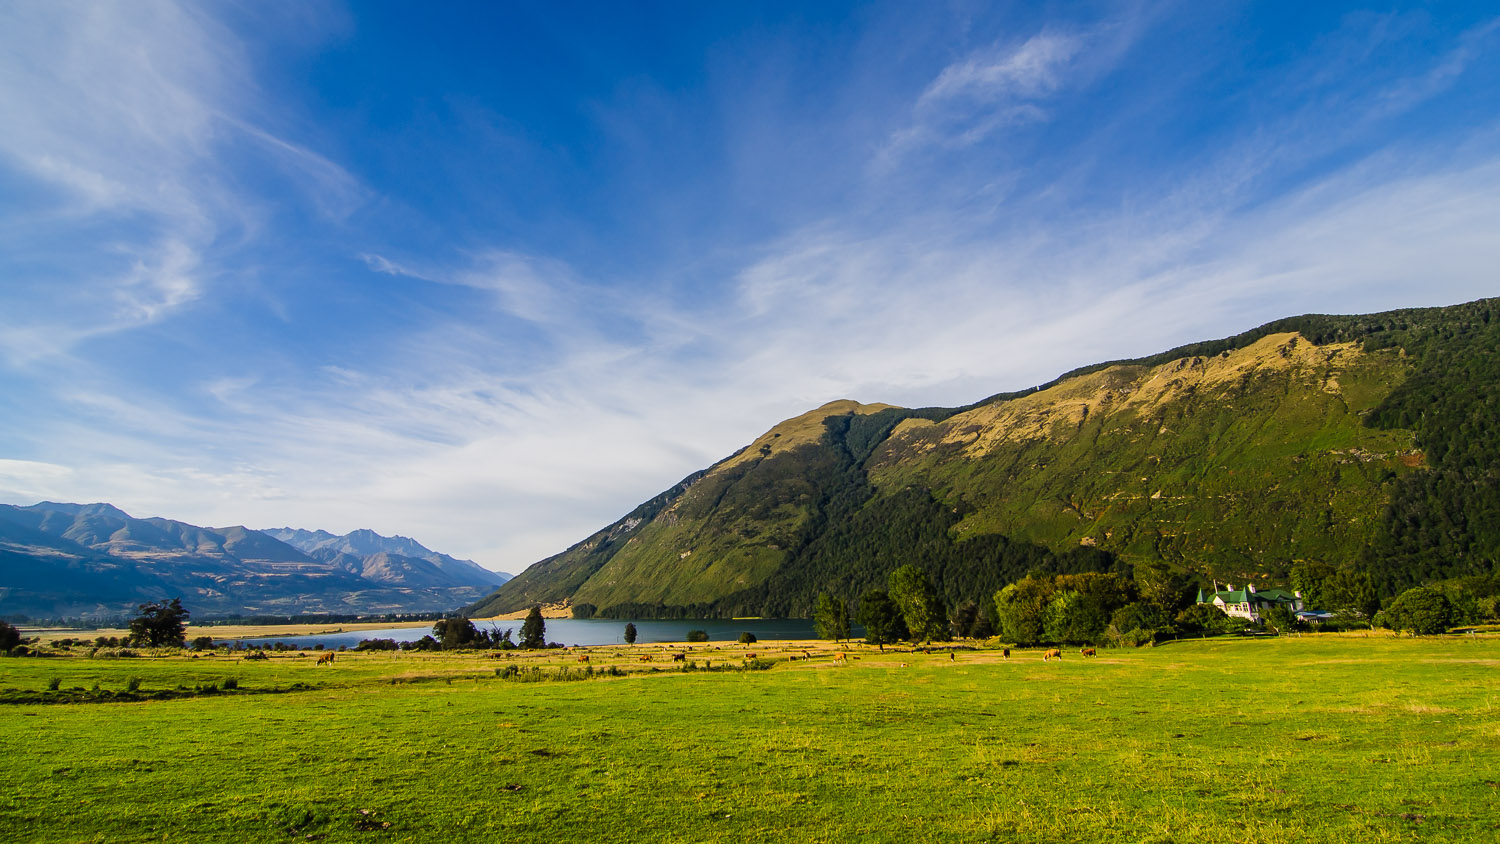 Paradise, New Zealand (seriously, that's the name)  © Dustin Main 2013